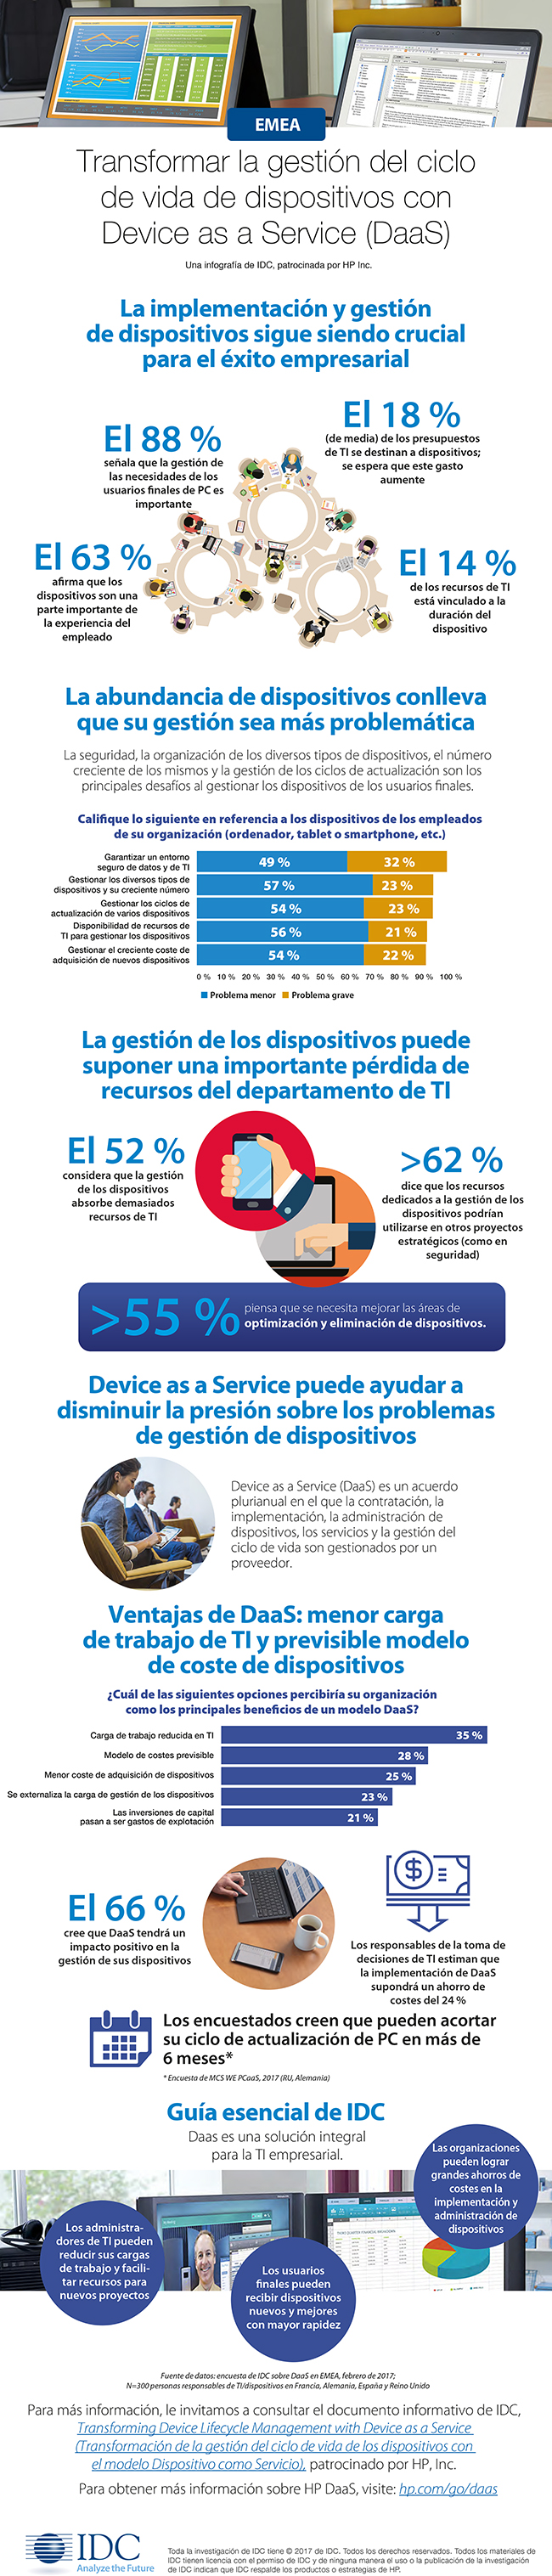 Infografia HP DaaS dispositivos